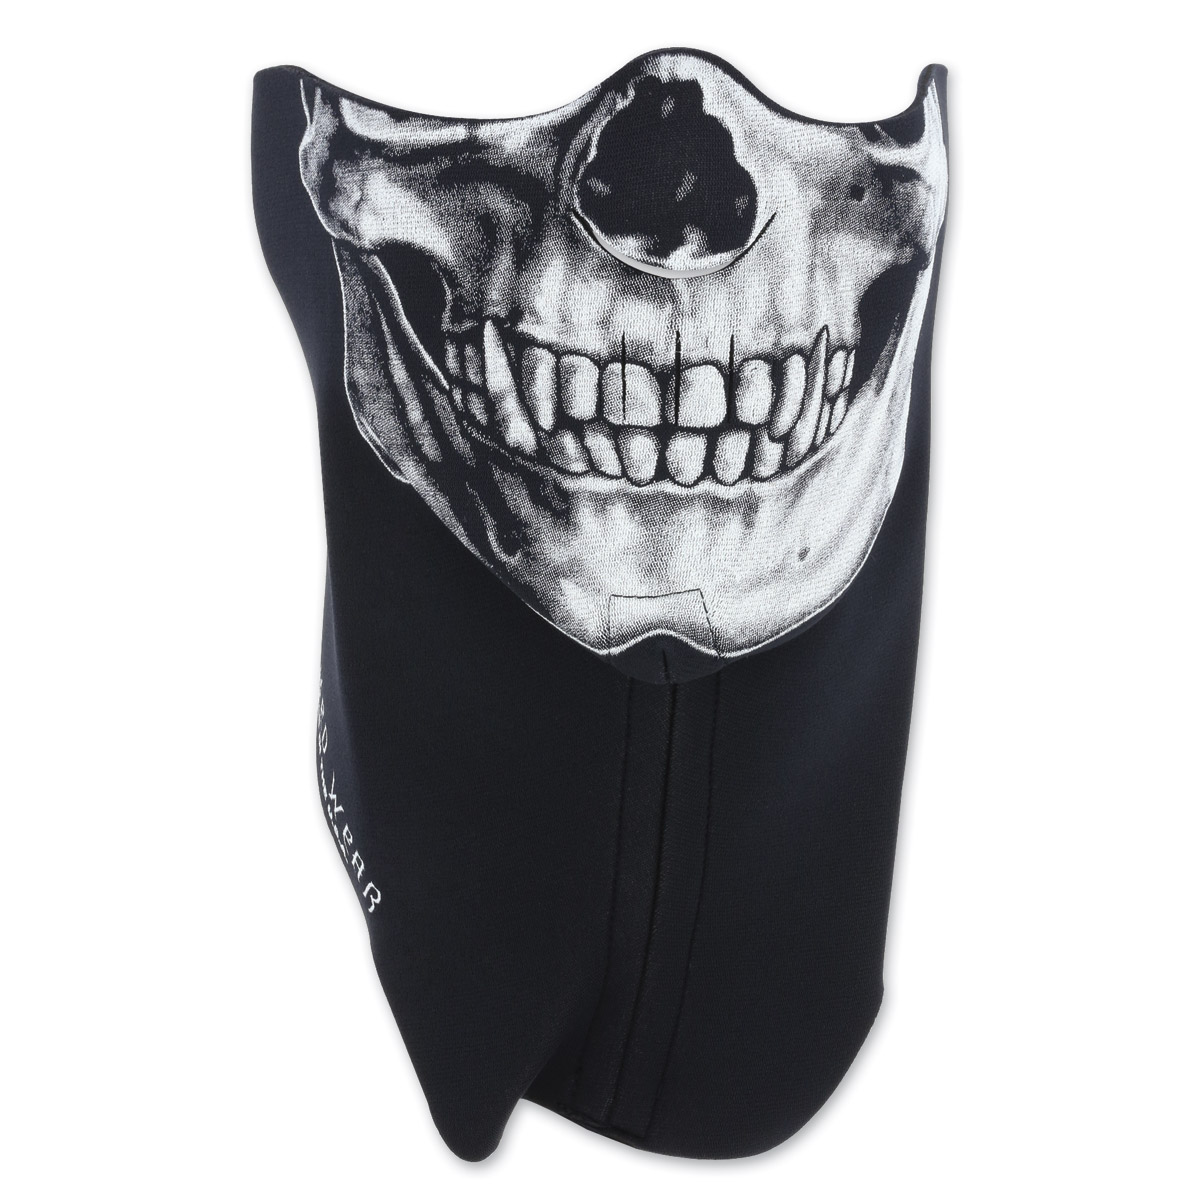 Wicked Wear Half Skull X-tremely Cool Weather Mask